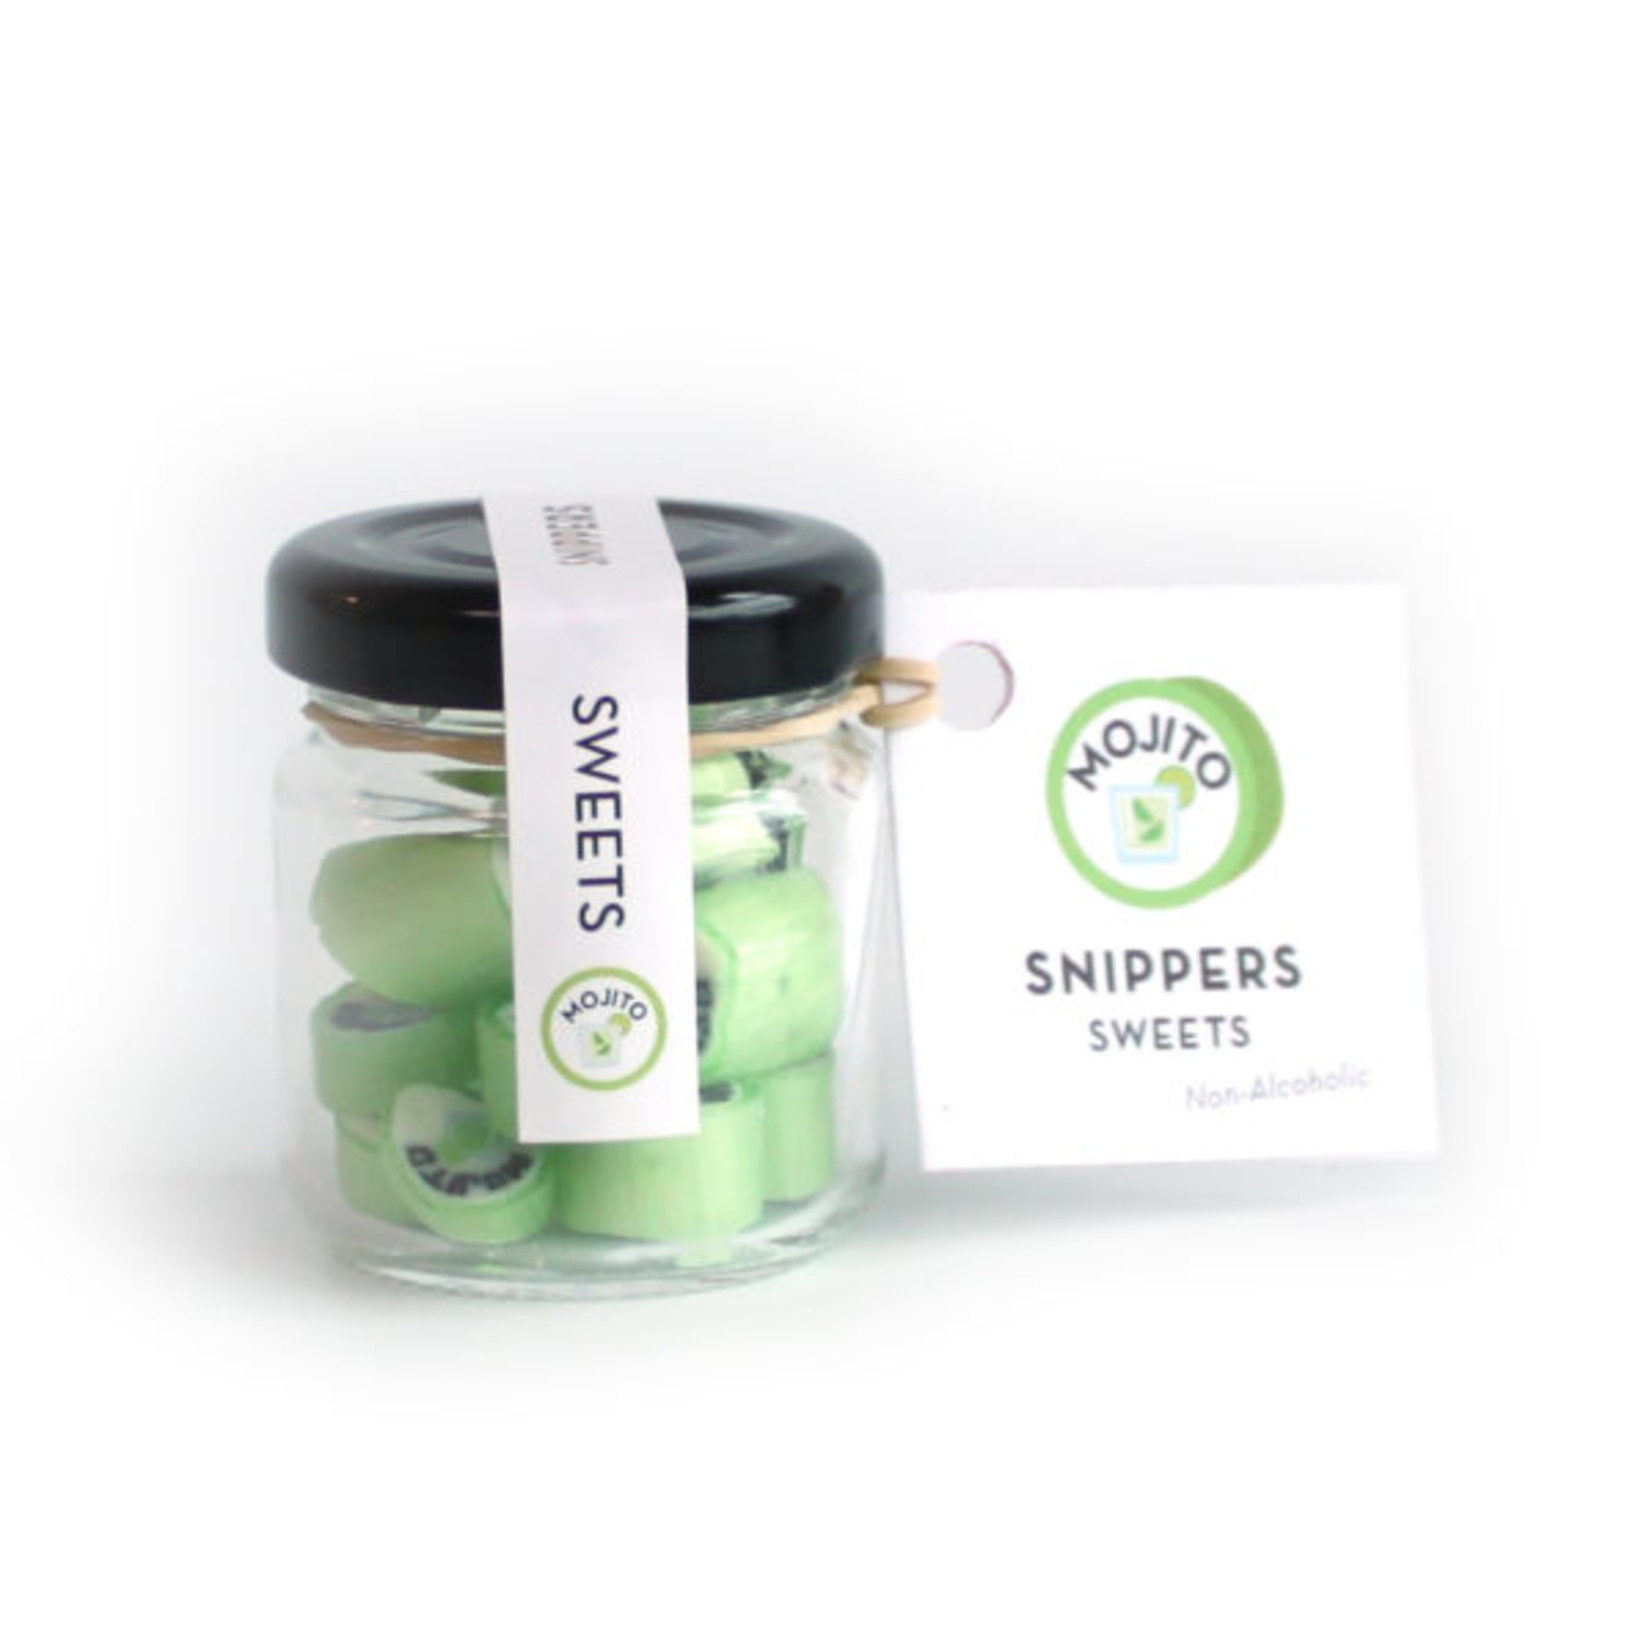 Snippers snoepjes Mojito